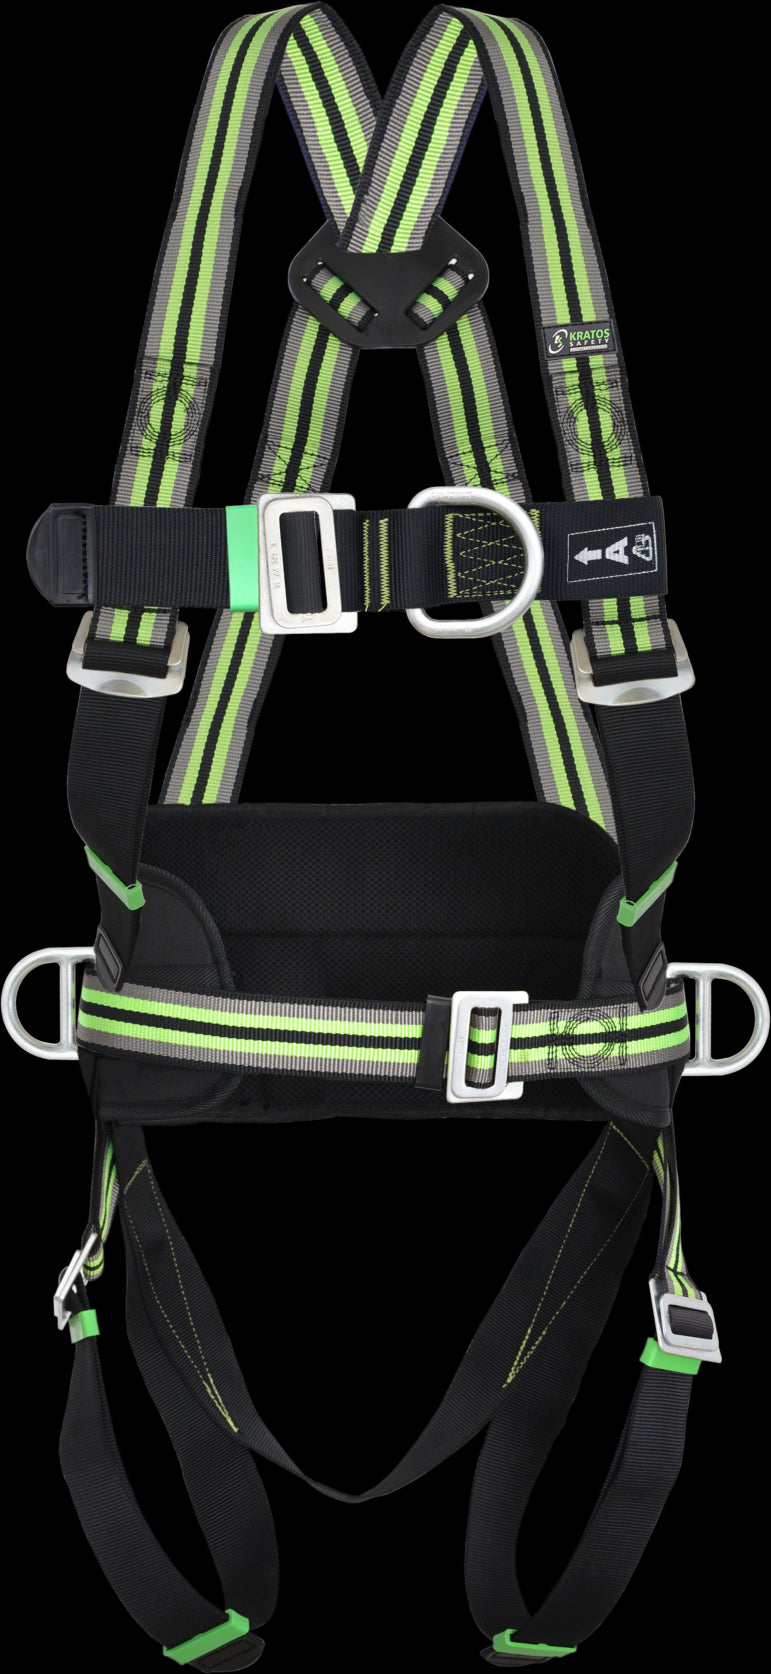 FA1020500,Fall protection, Safety Harness